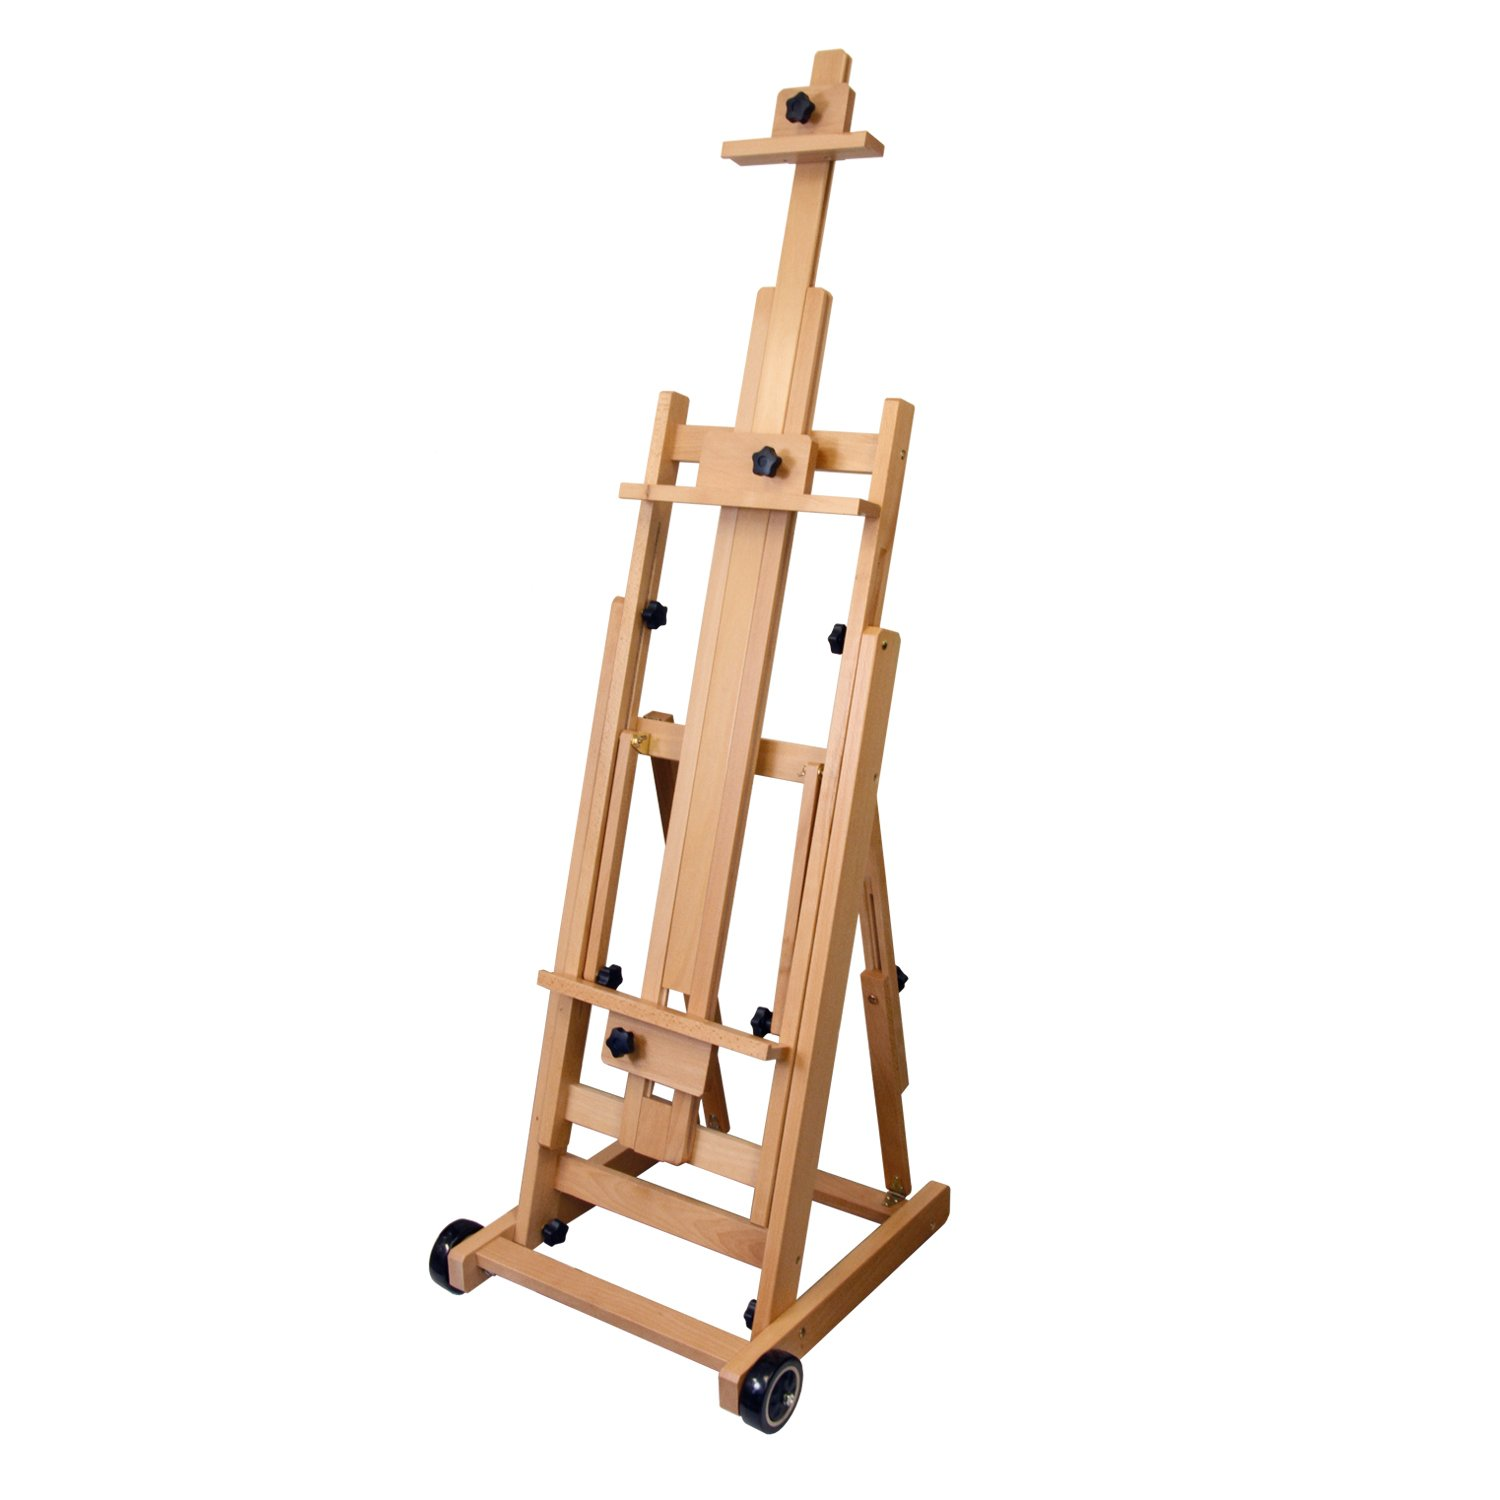 US Art Supply Master Multi-Function Studio Artist Wood Floor Easel, 19''Wide x 21''Deep x 56-1/2''High, (Adjusts to 97''High) by US Art Supply (Image #5)